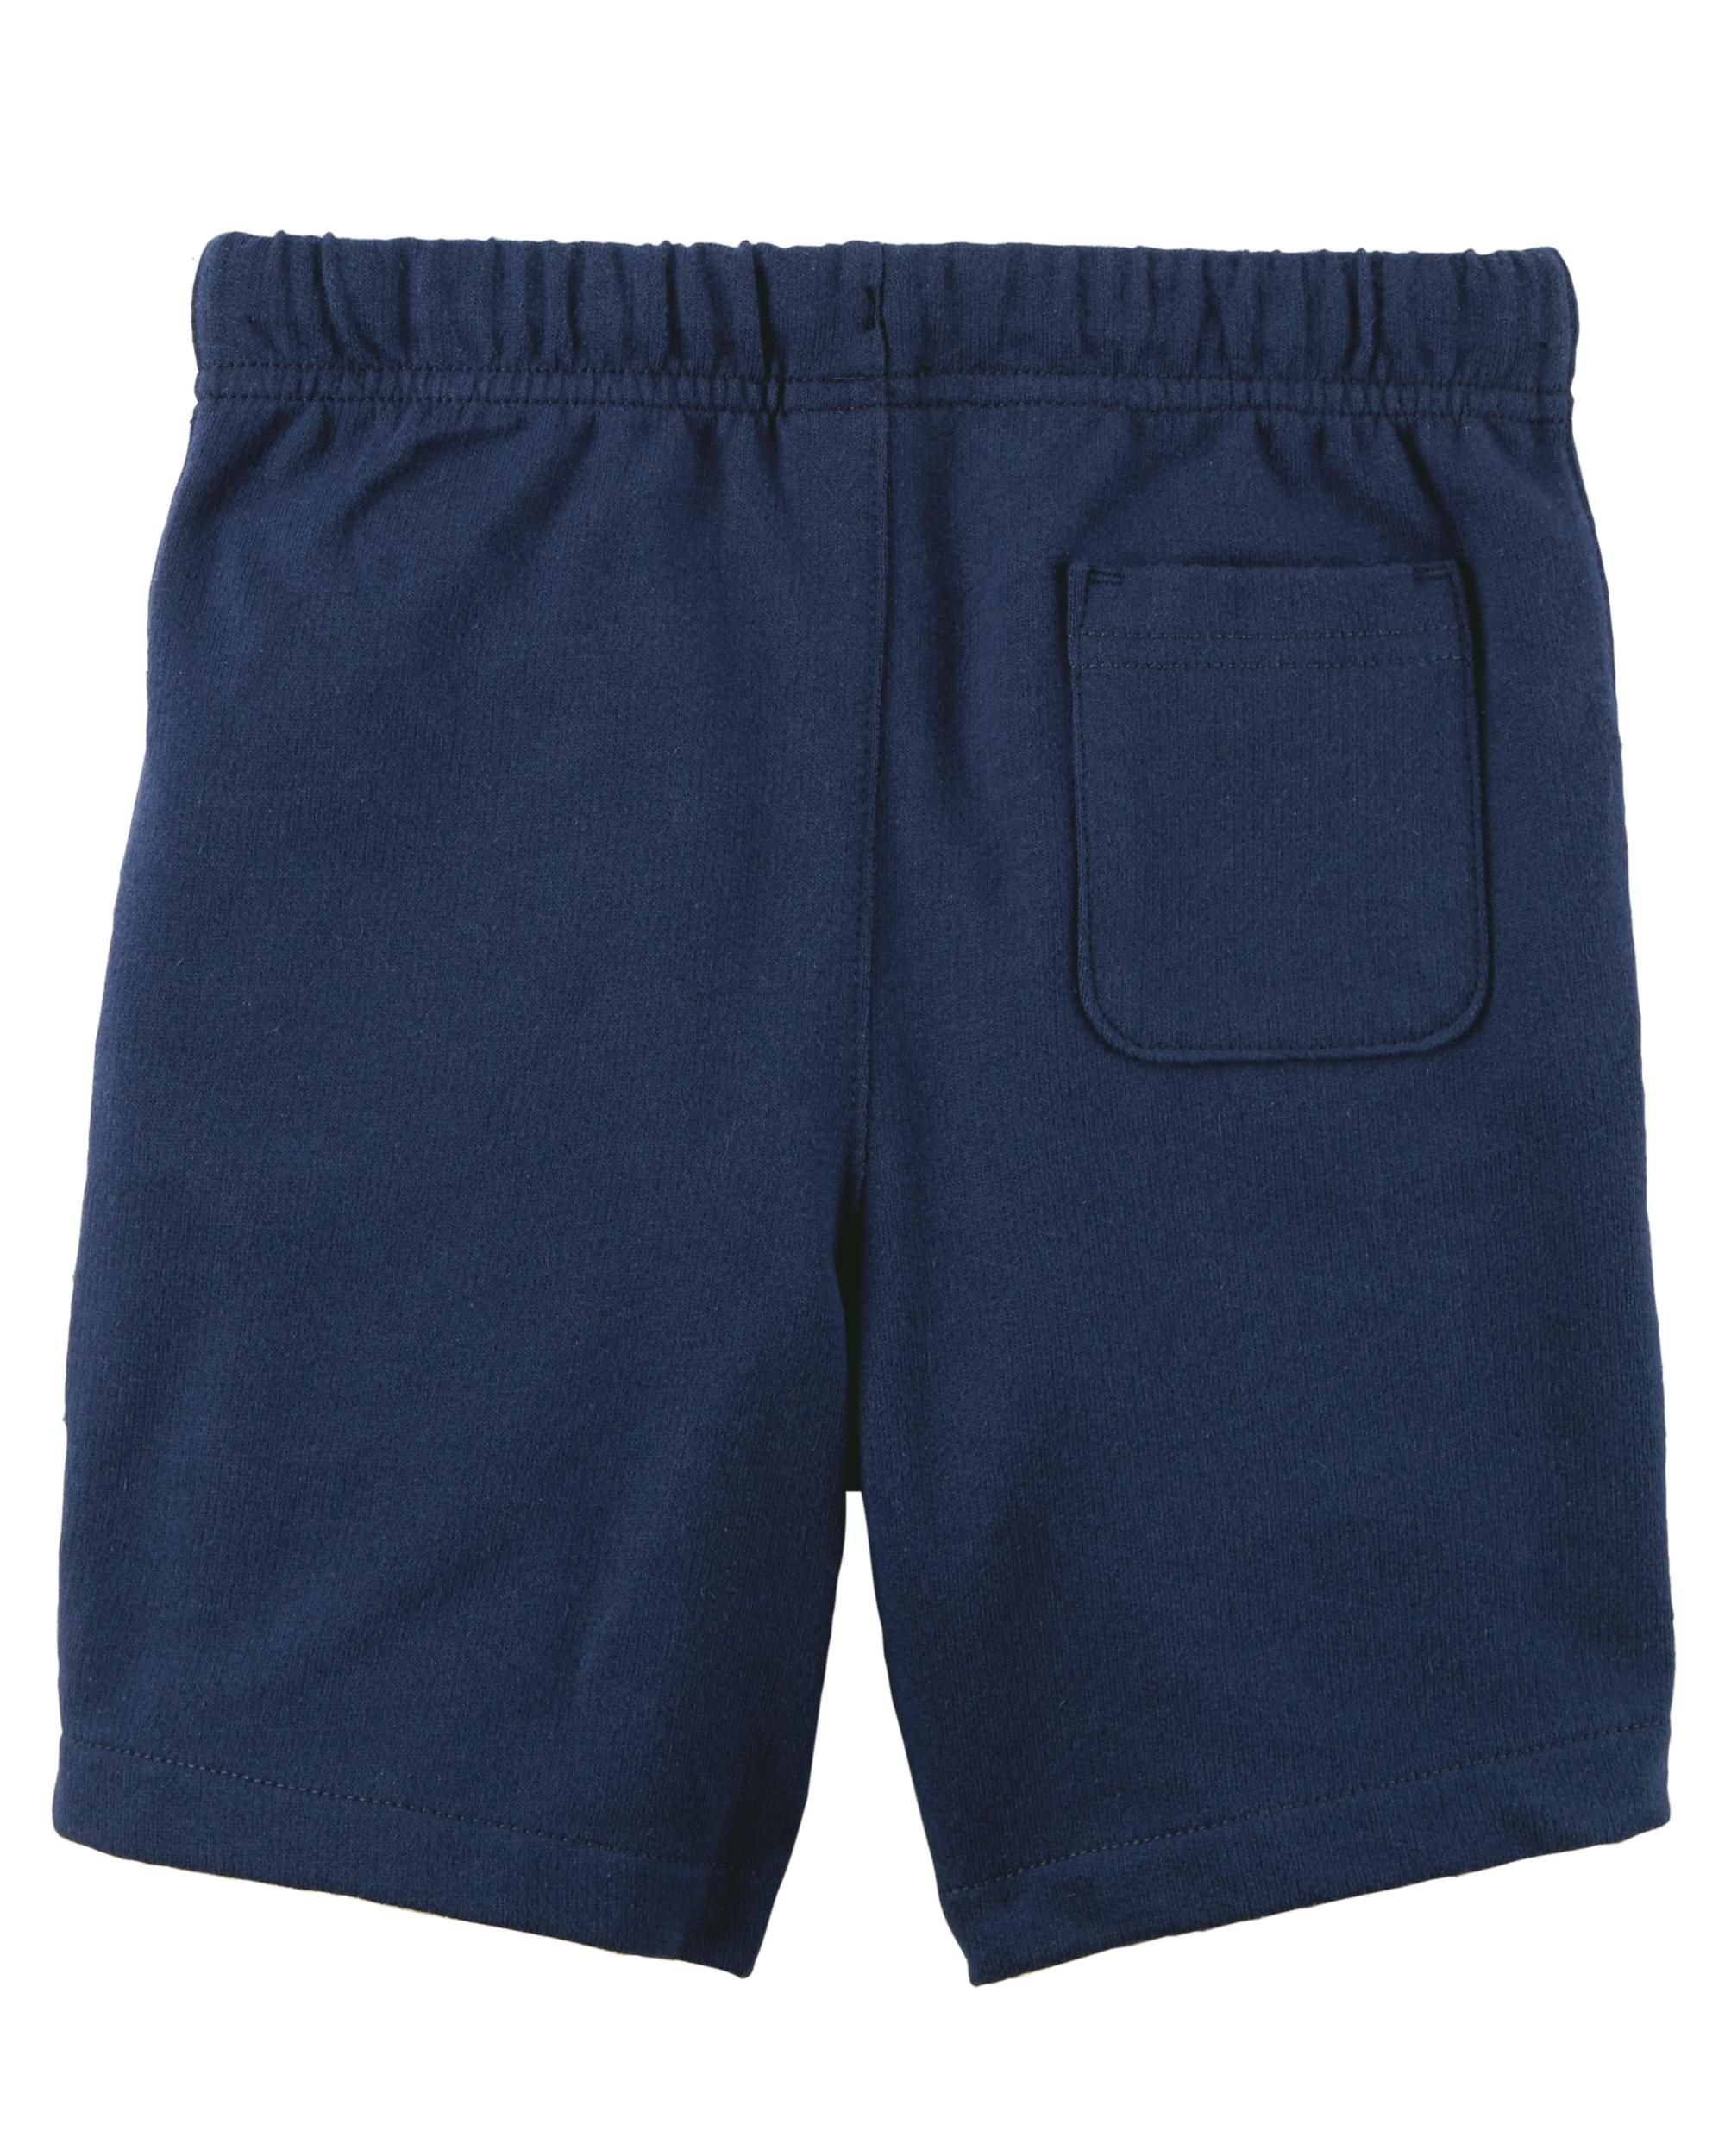 Carter's Set of 2 Boy's Cotton Pull On Shorts Toddler Little and Big Boys (5T, Dark Grey and Navy Blue) by Carter's Baby Clothing (Image #3)